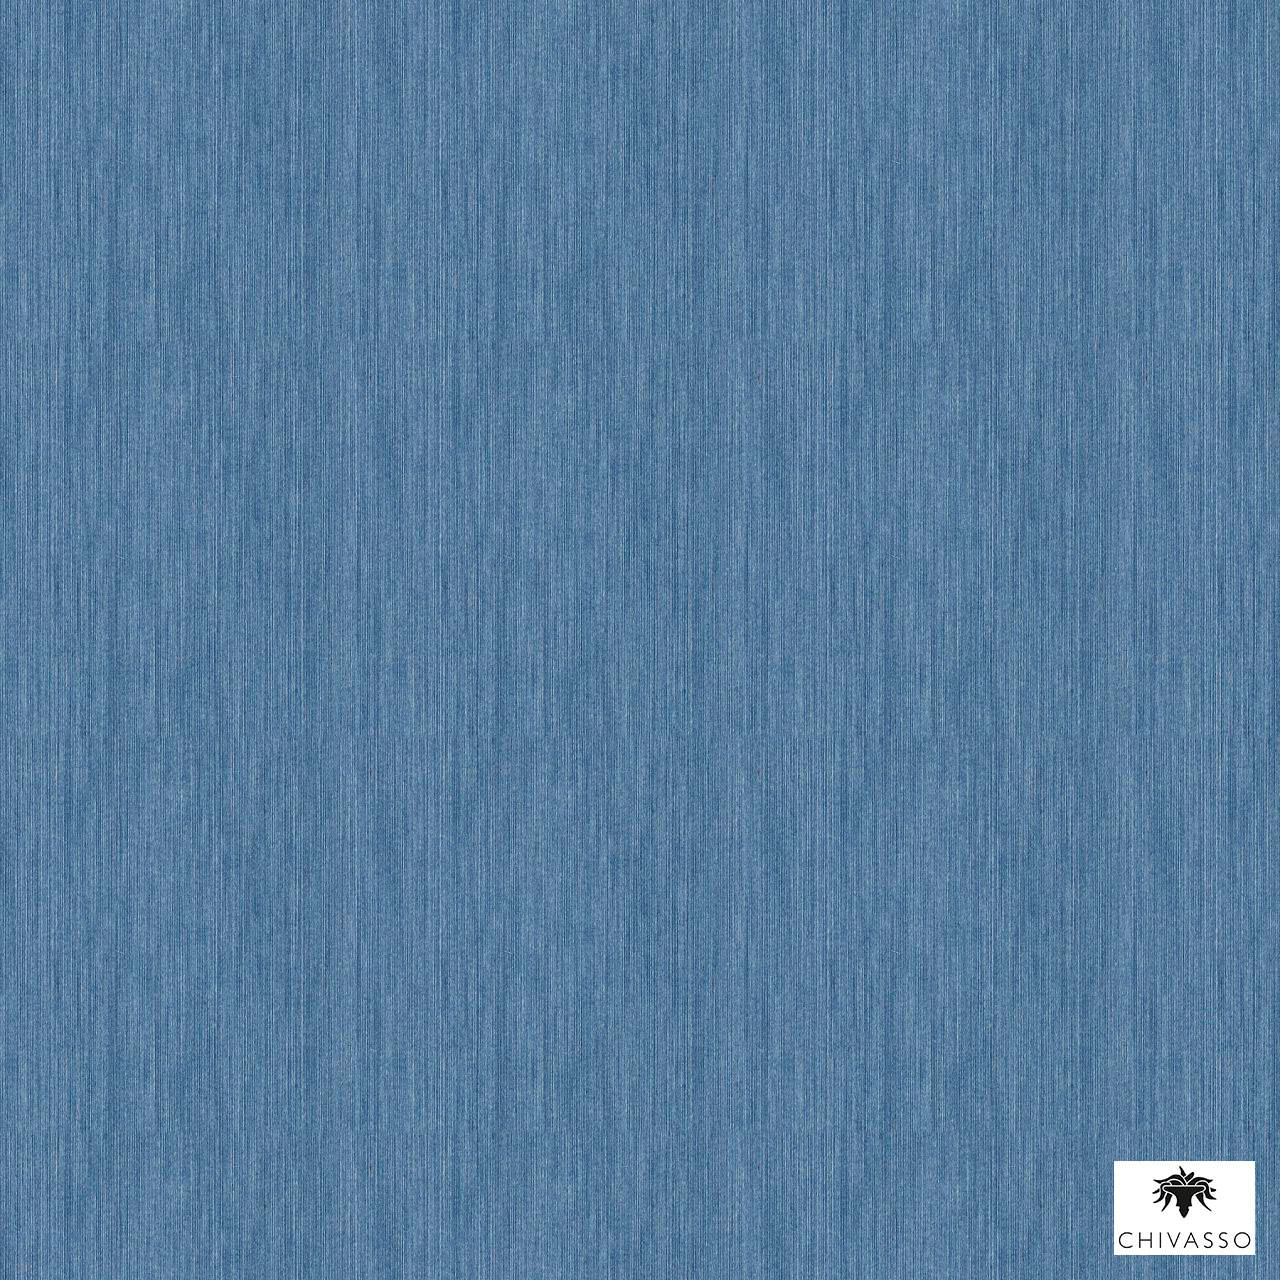 Chivasso - Colour Block - Ch9112-052  | Wallpaper, Wallcovering - Blue, Plain, Domestic Use